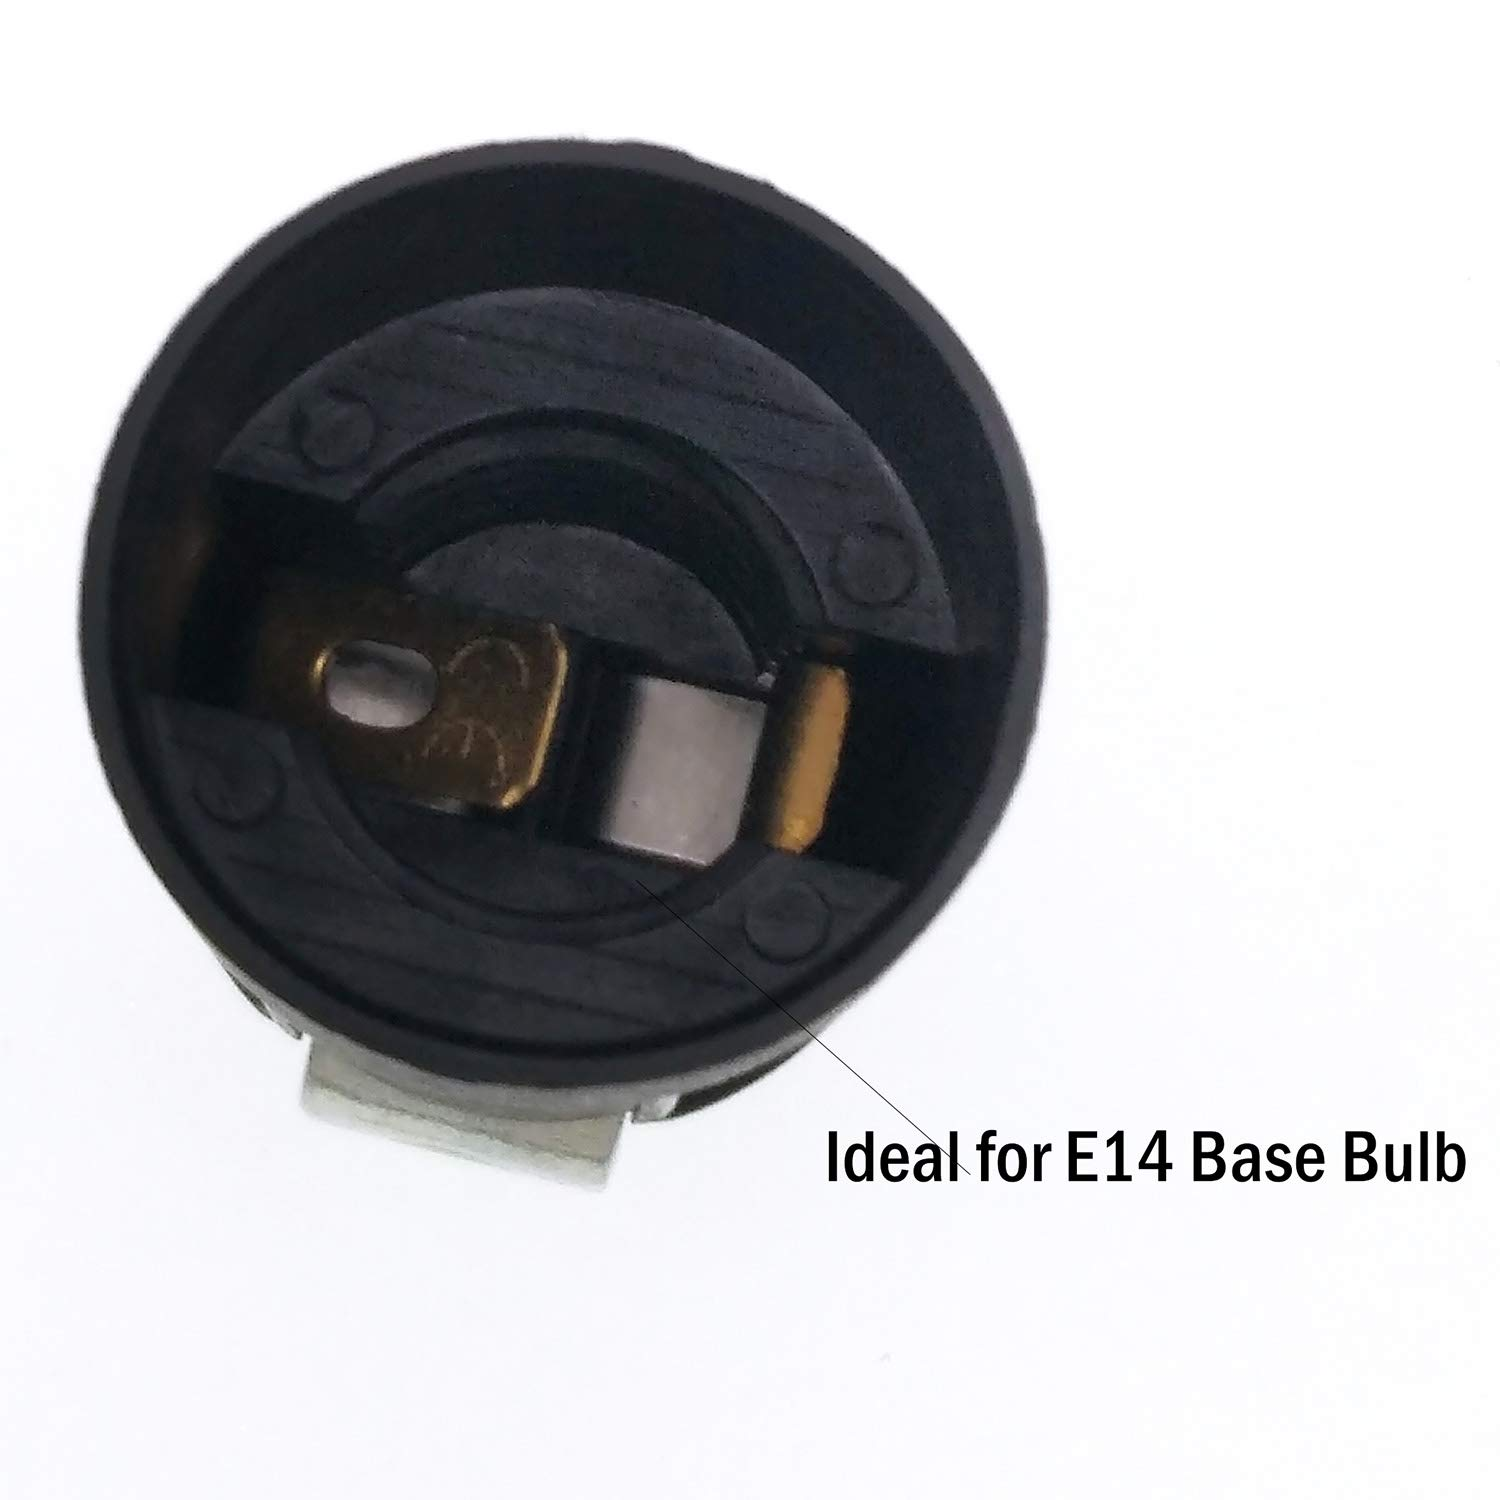 Black E14 Thermoplastic Candle Lamp Holder,6 Pack of SES 52mm Height Wall Lamp Pendant E14 Lamp Socket with 1//8IPS Threaded Hickey